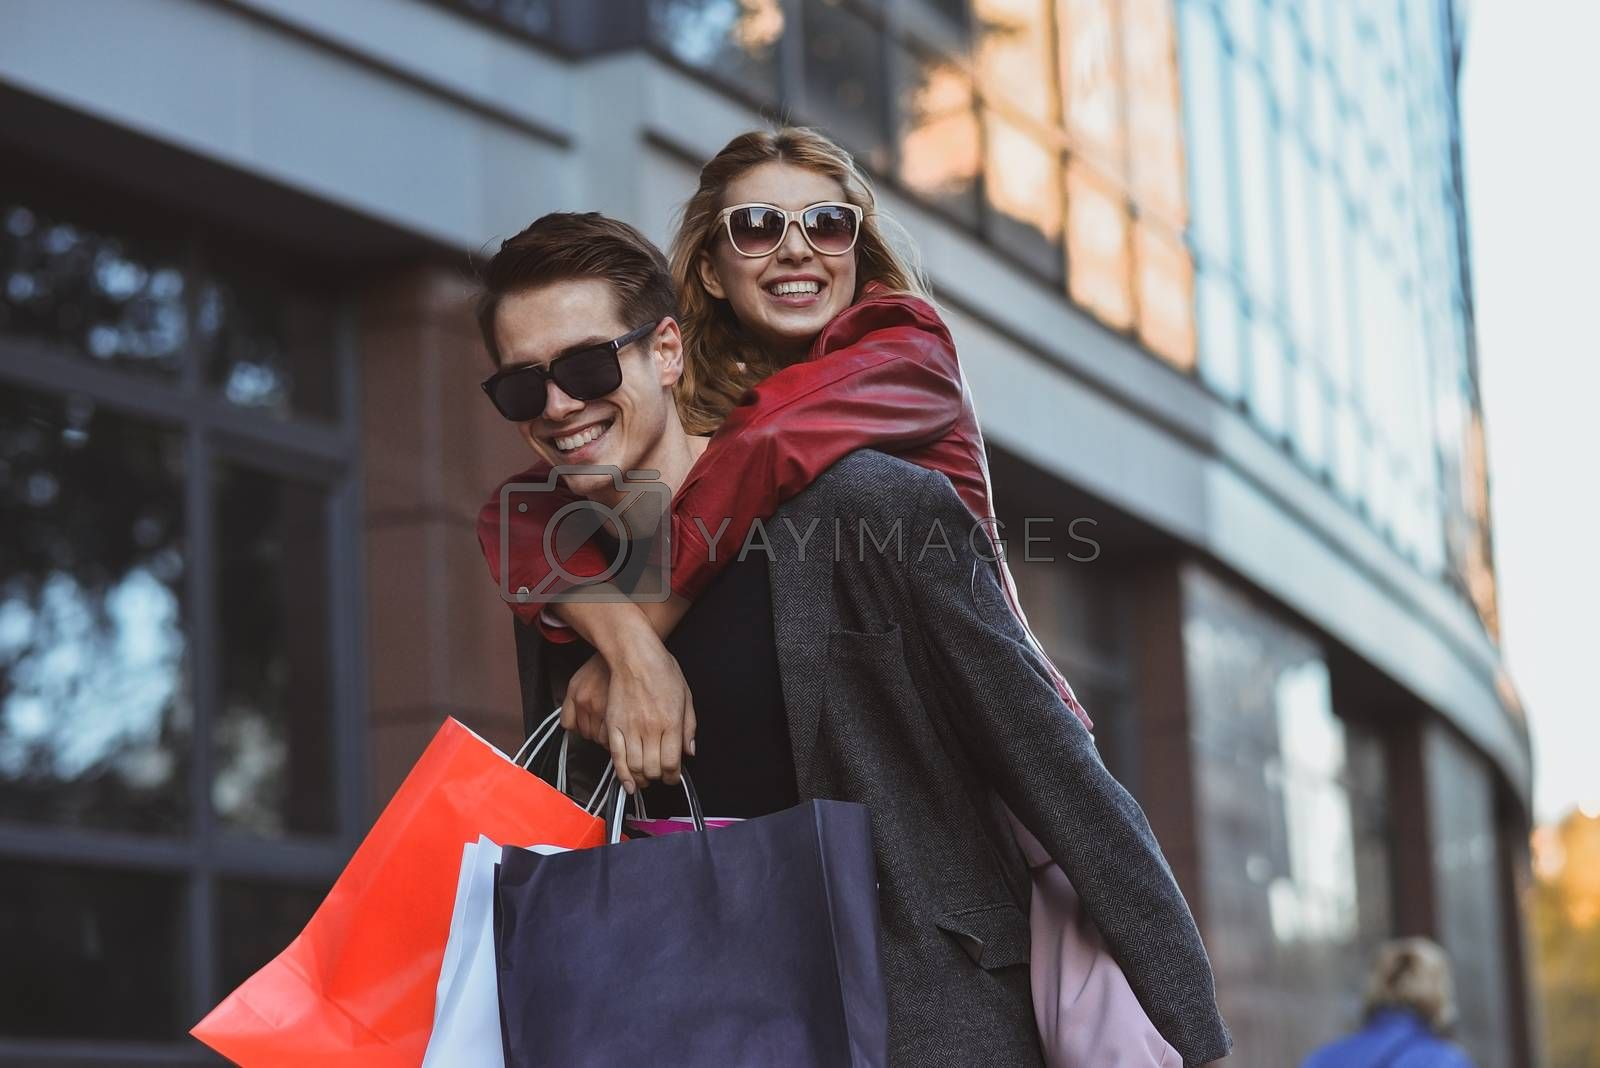 Happy couple shopping together and having fun. Boyfriend carrying his girlfriend on the piggyback.